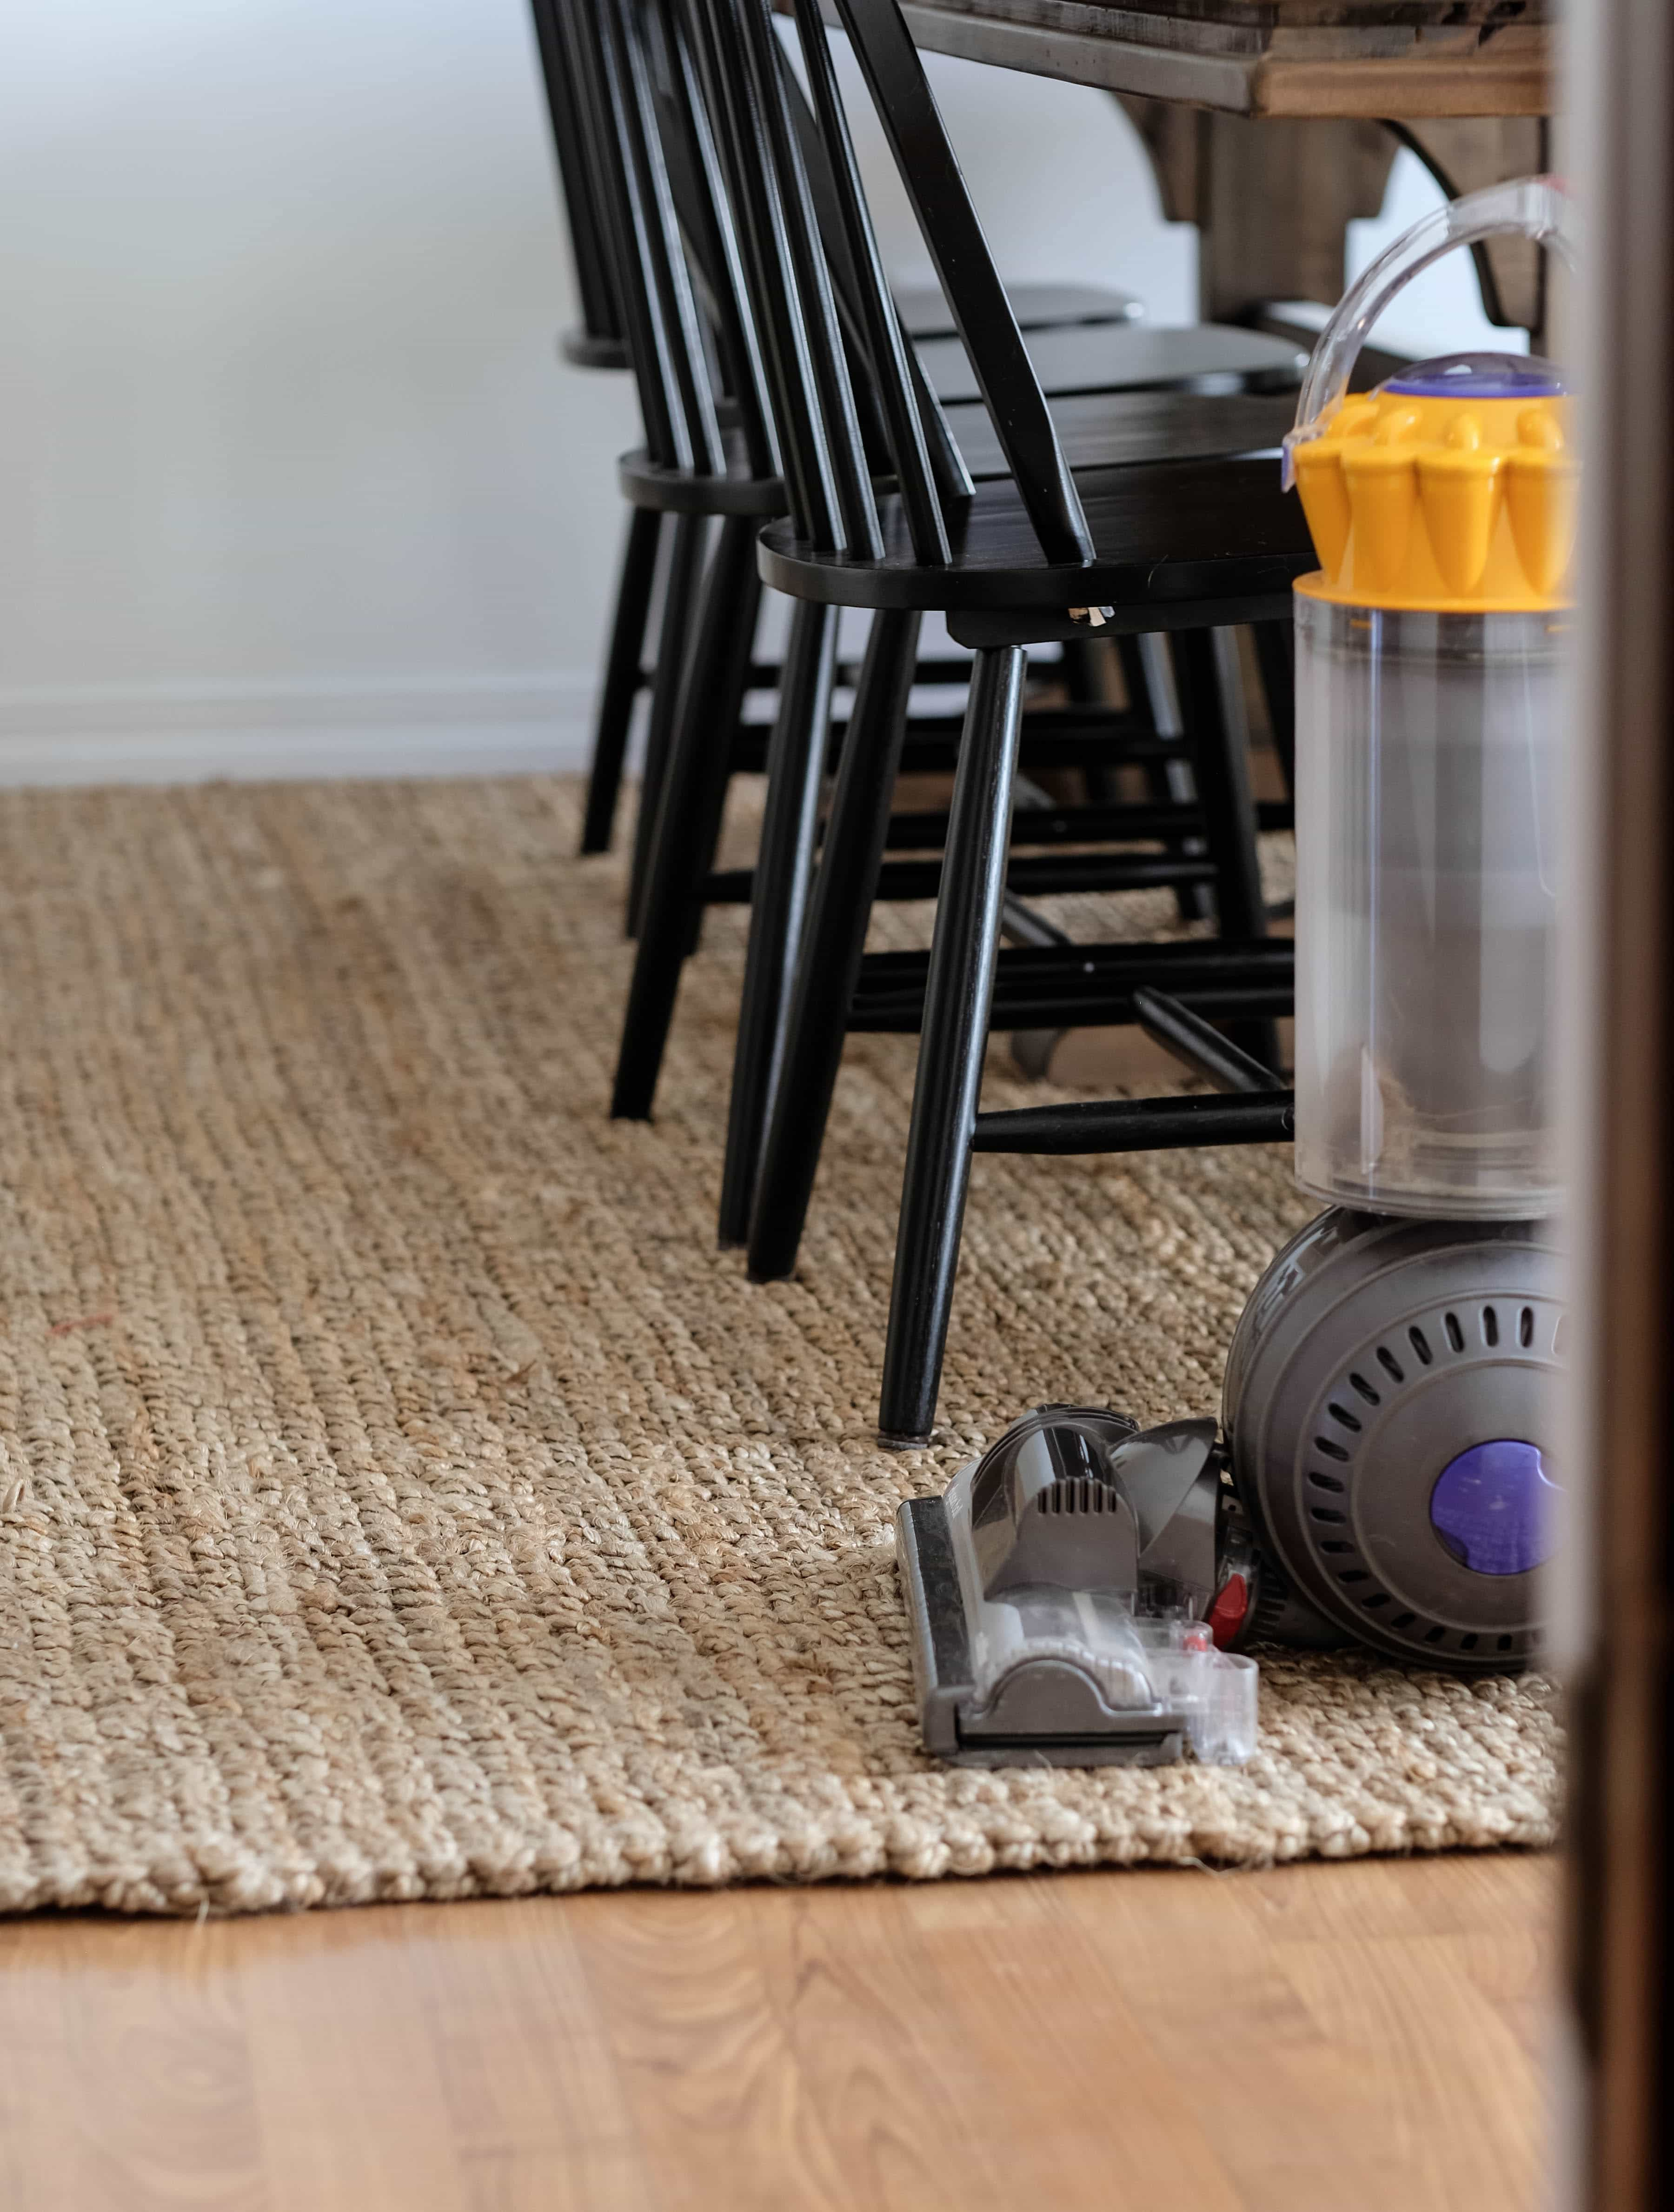 Jute rug in dining room with table and chairs. Dyson vacuum in foreground.